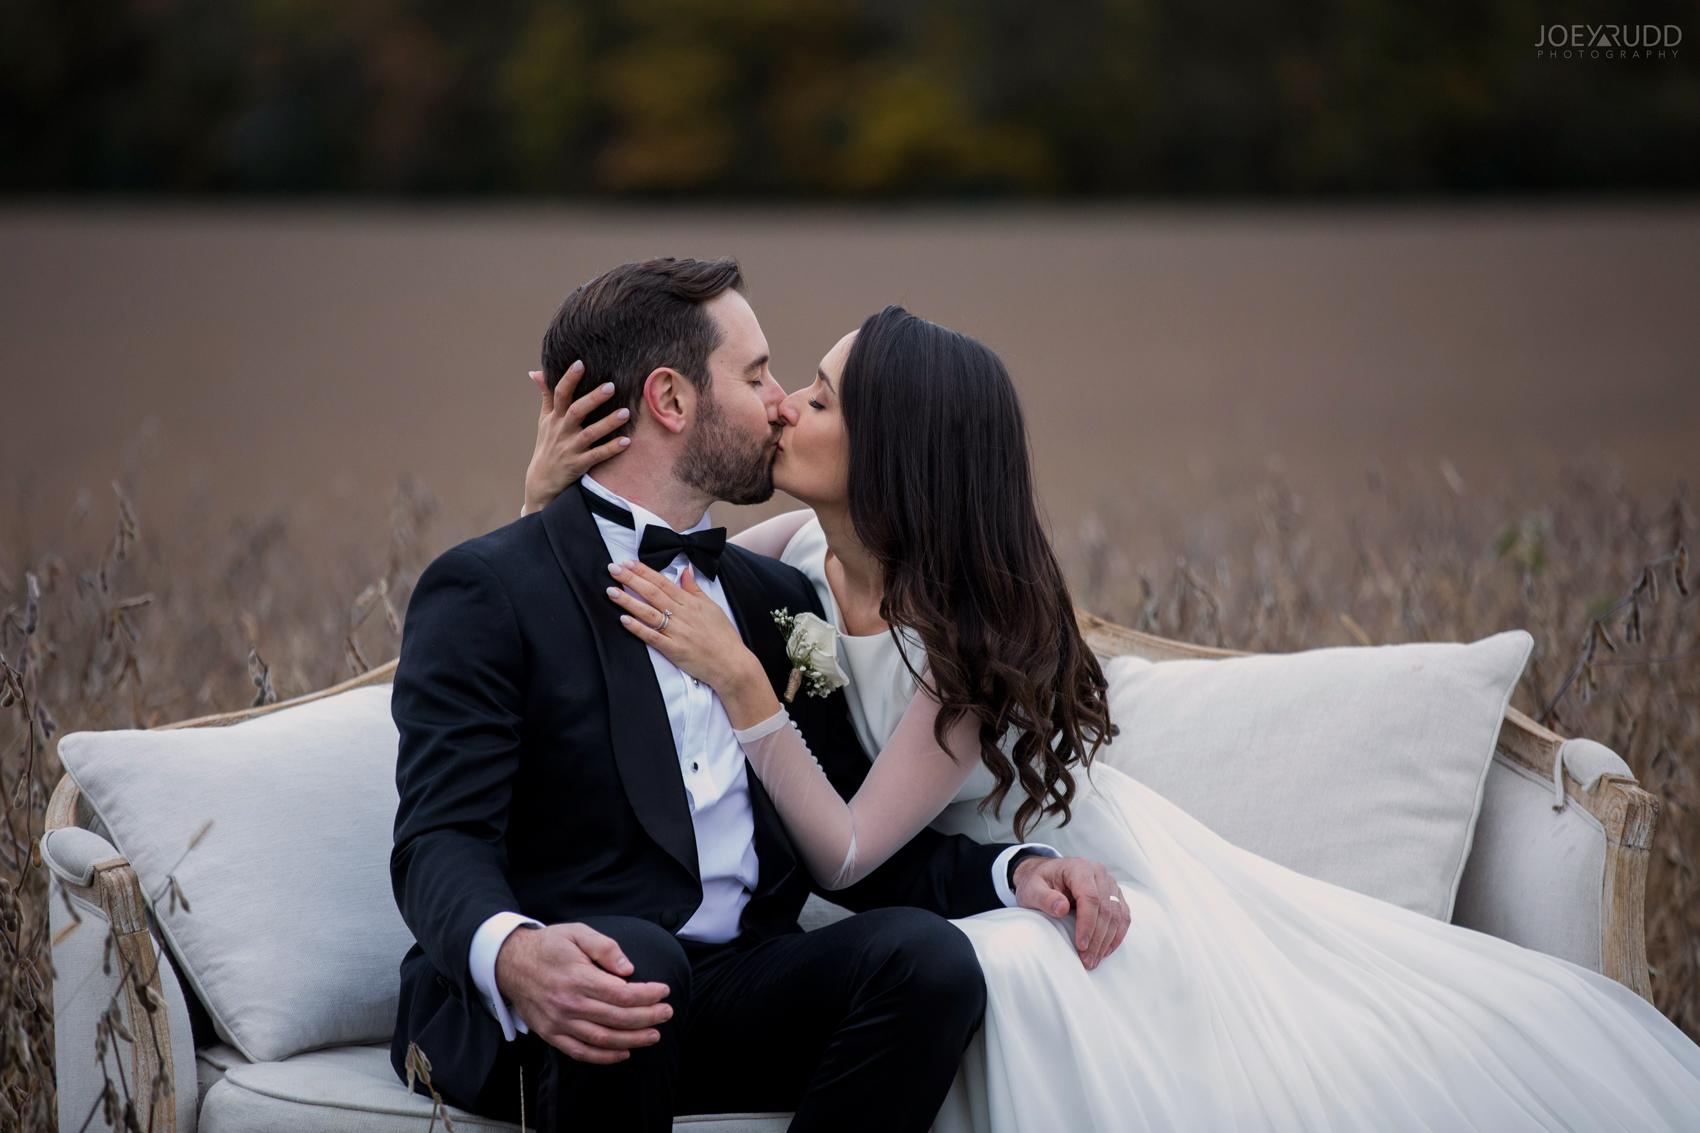 2018_10_07---Aksana-&-Mark-714TopRight.jpgEvermore Wedding, Evermore Wedding and Events, Ottawa Wedding, Almonte Wedding, Ottawa Photographer, Wedding Photography, Wedding Photographer, Joey Rudd Photography, Farm Wedding, Rustic Wedding, Barn Wedding Venue, Wedding Venue, Ottawa Wedding Venue, Almonte Riverside Inn, Candid, field wedding photo, couch in field, kissing on couch